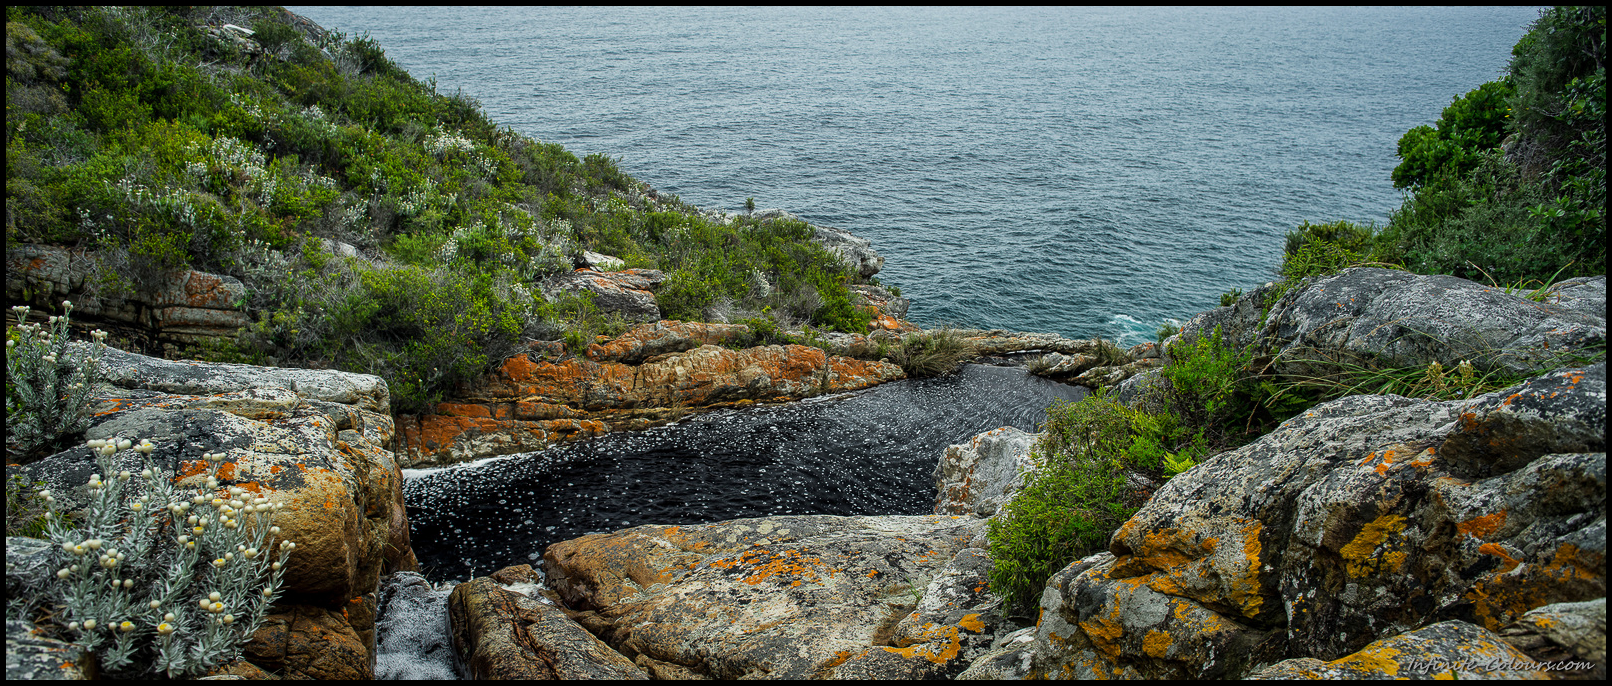 A stunning natural infinity-pool made a superb stopover on the way to the Bloukrans river